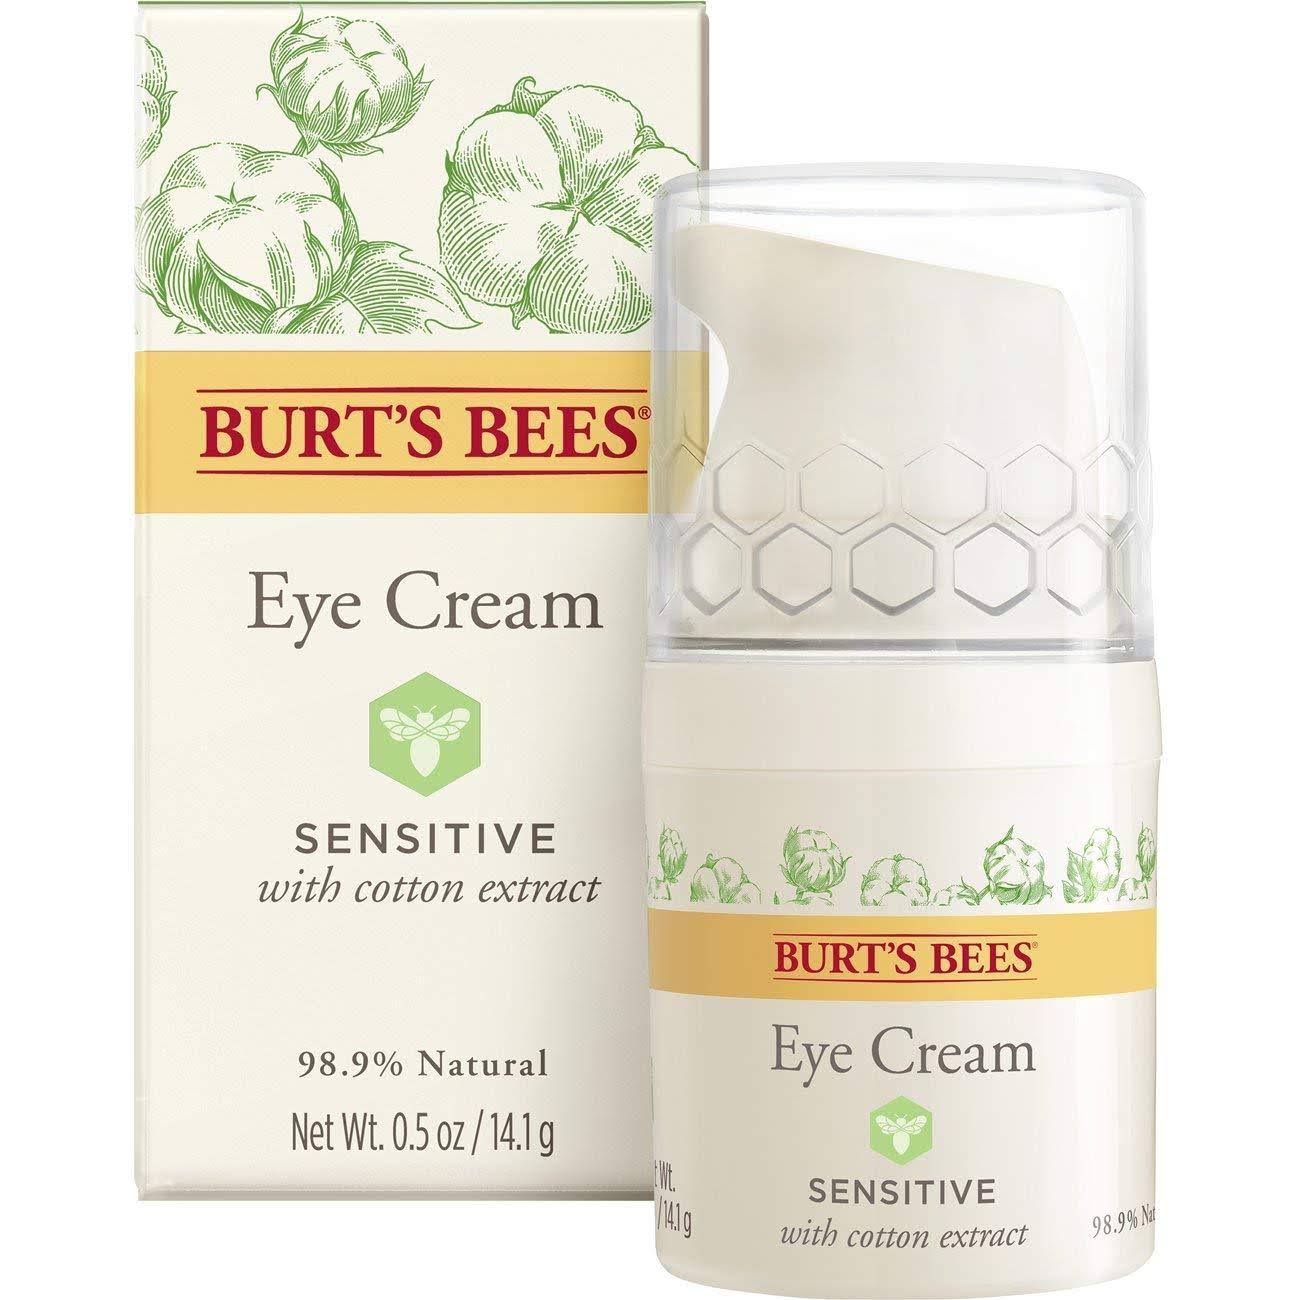 Burt's Bees Sensitive Eye Cream - 0.5oz